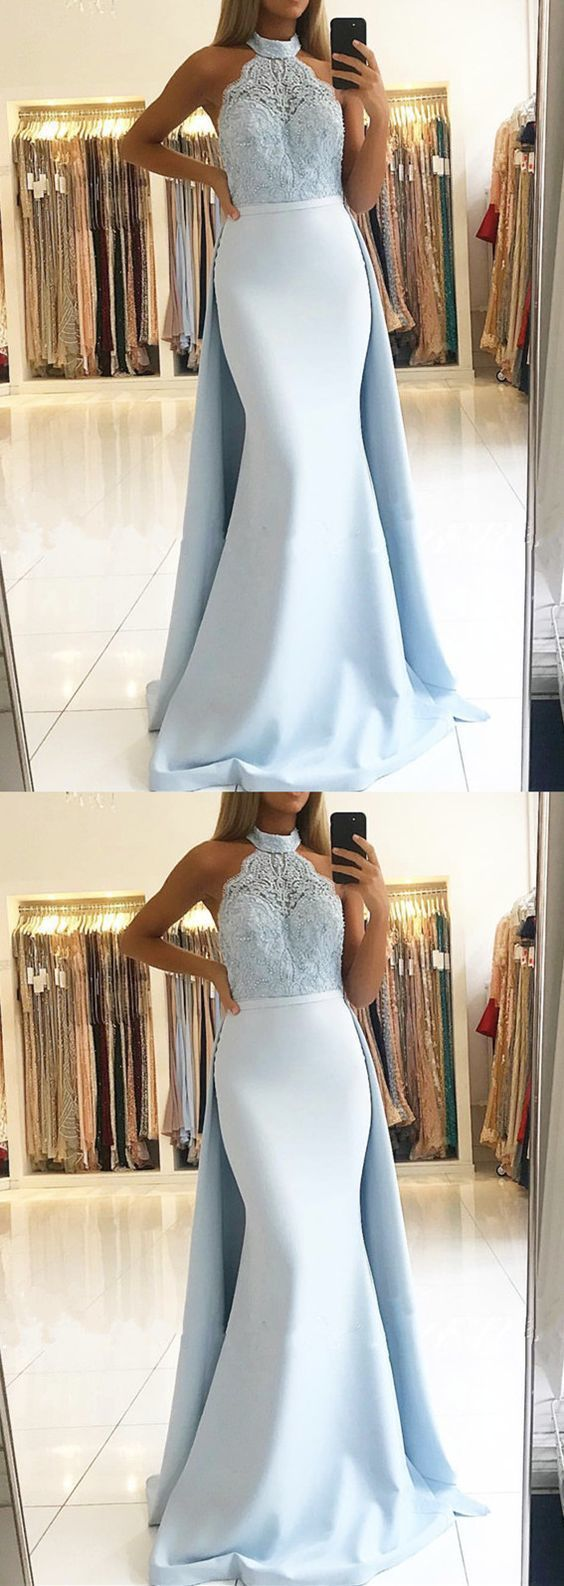 Elegant Blue Lace Halter Mermaid Prom Dress,Sexy Party Dress,Formal